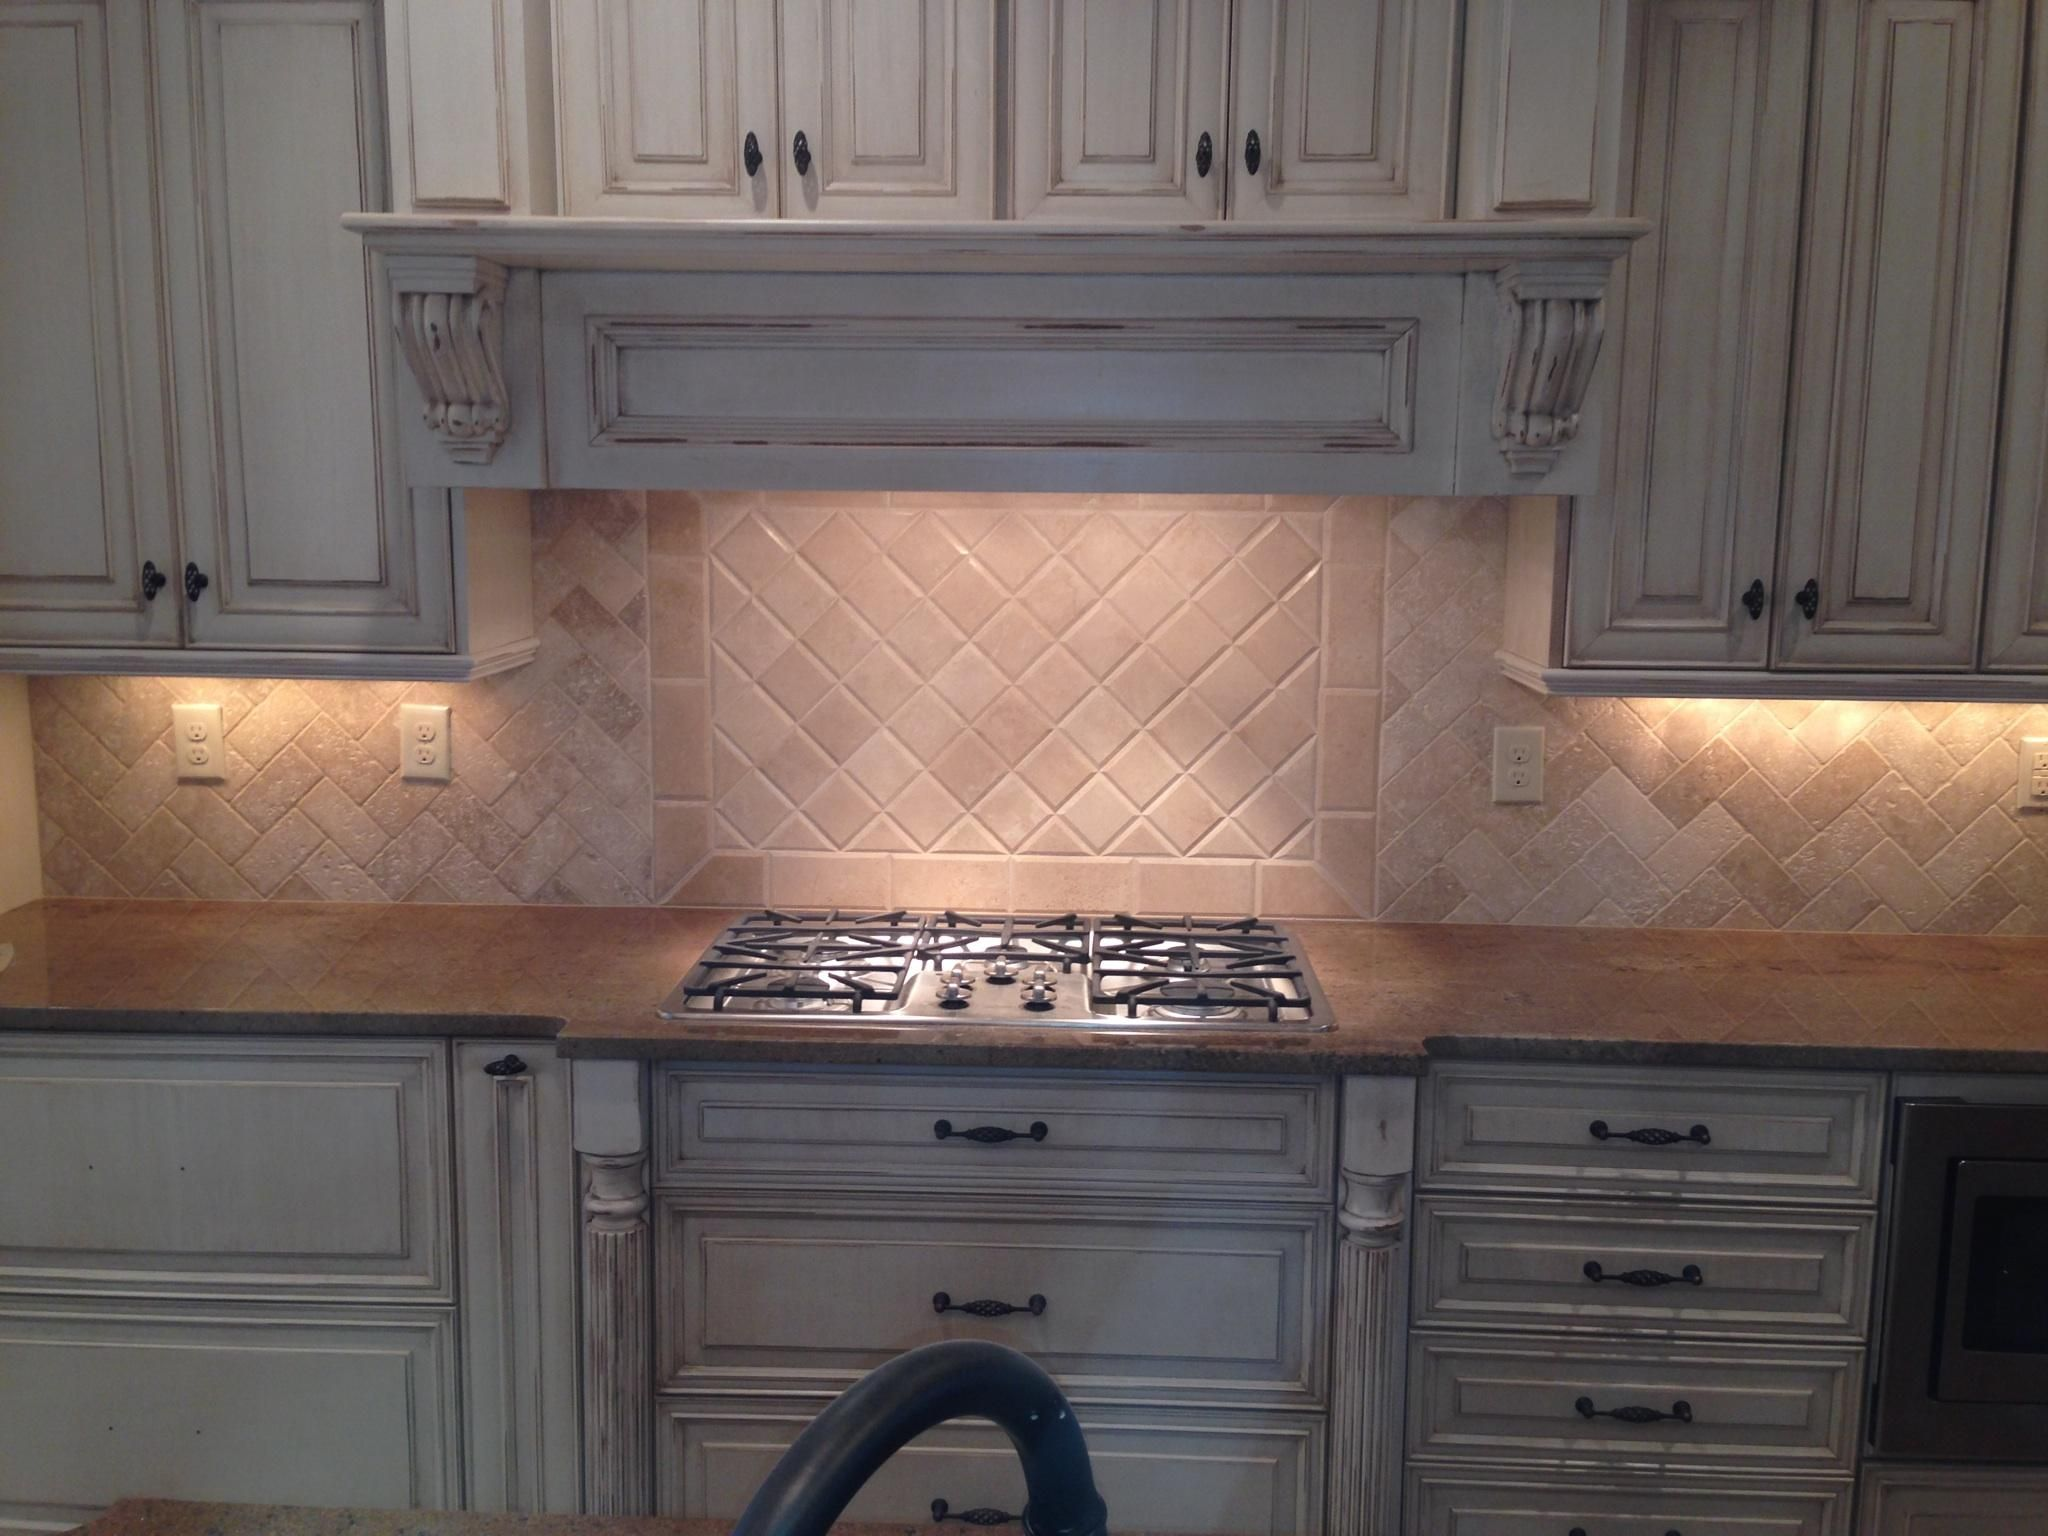 Backsplash tumbled marble travertine herringbone tile projects pinterest travertine - Backsplash designs travertine ...